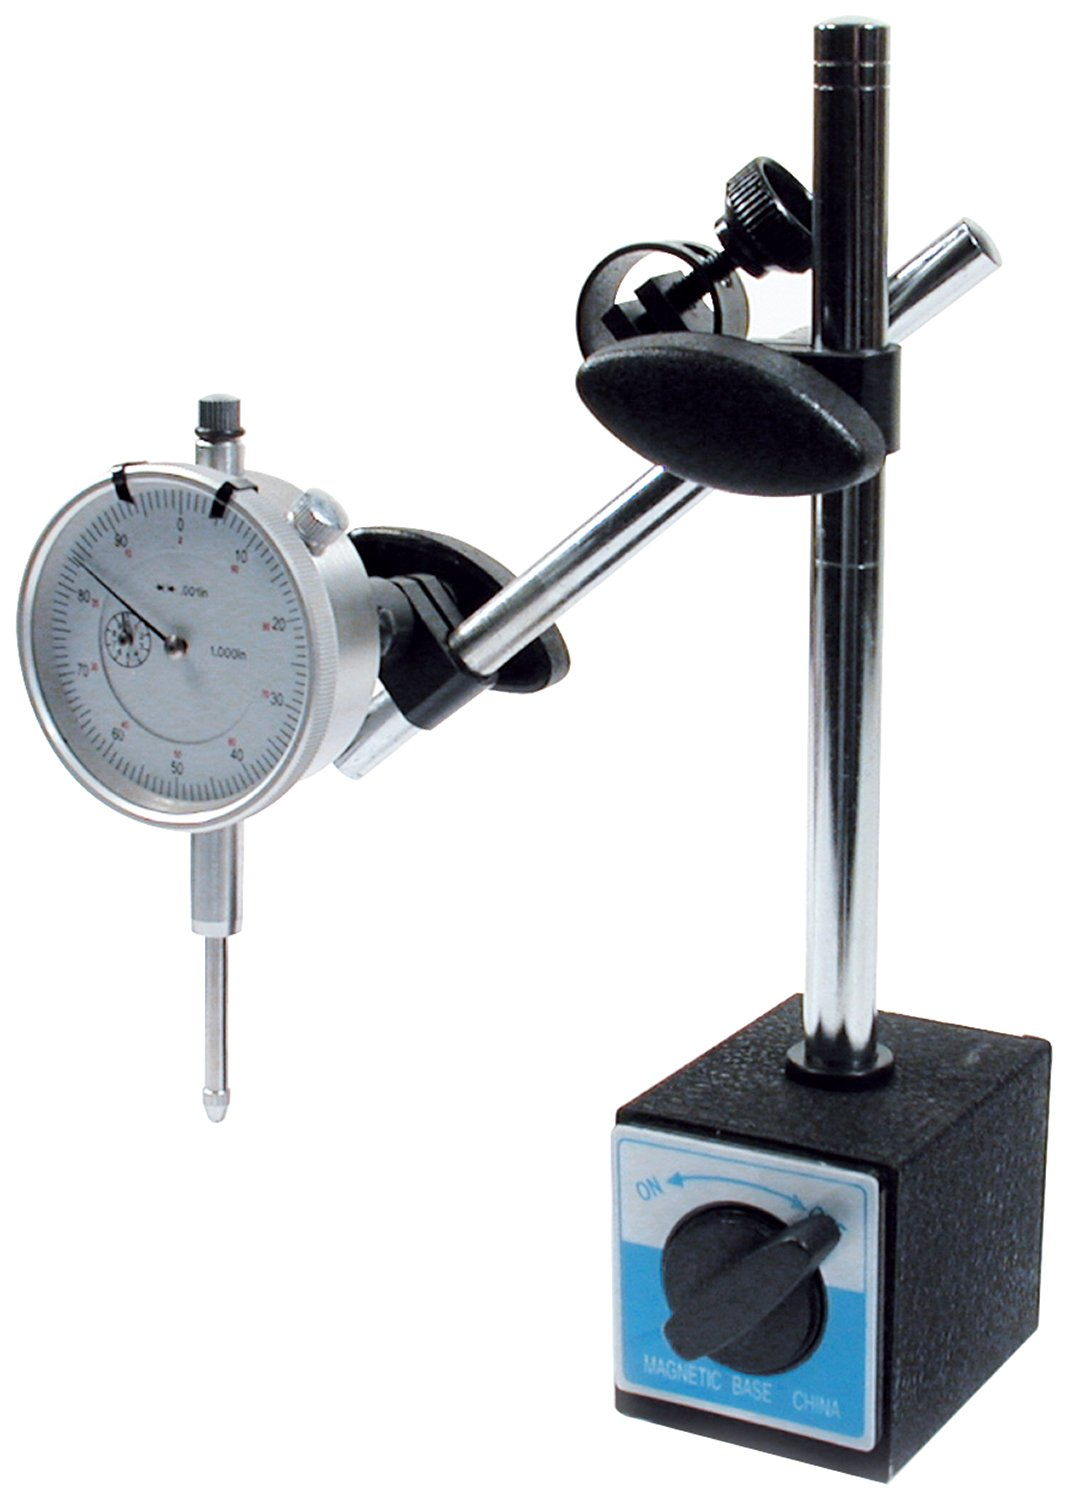 Allstar ALL96414 0.001 to 1-0.001 Increment Dial Indicator with Magnetic Base